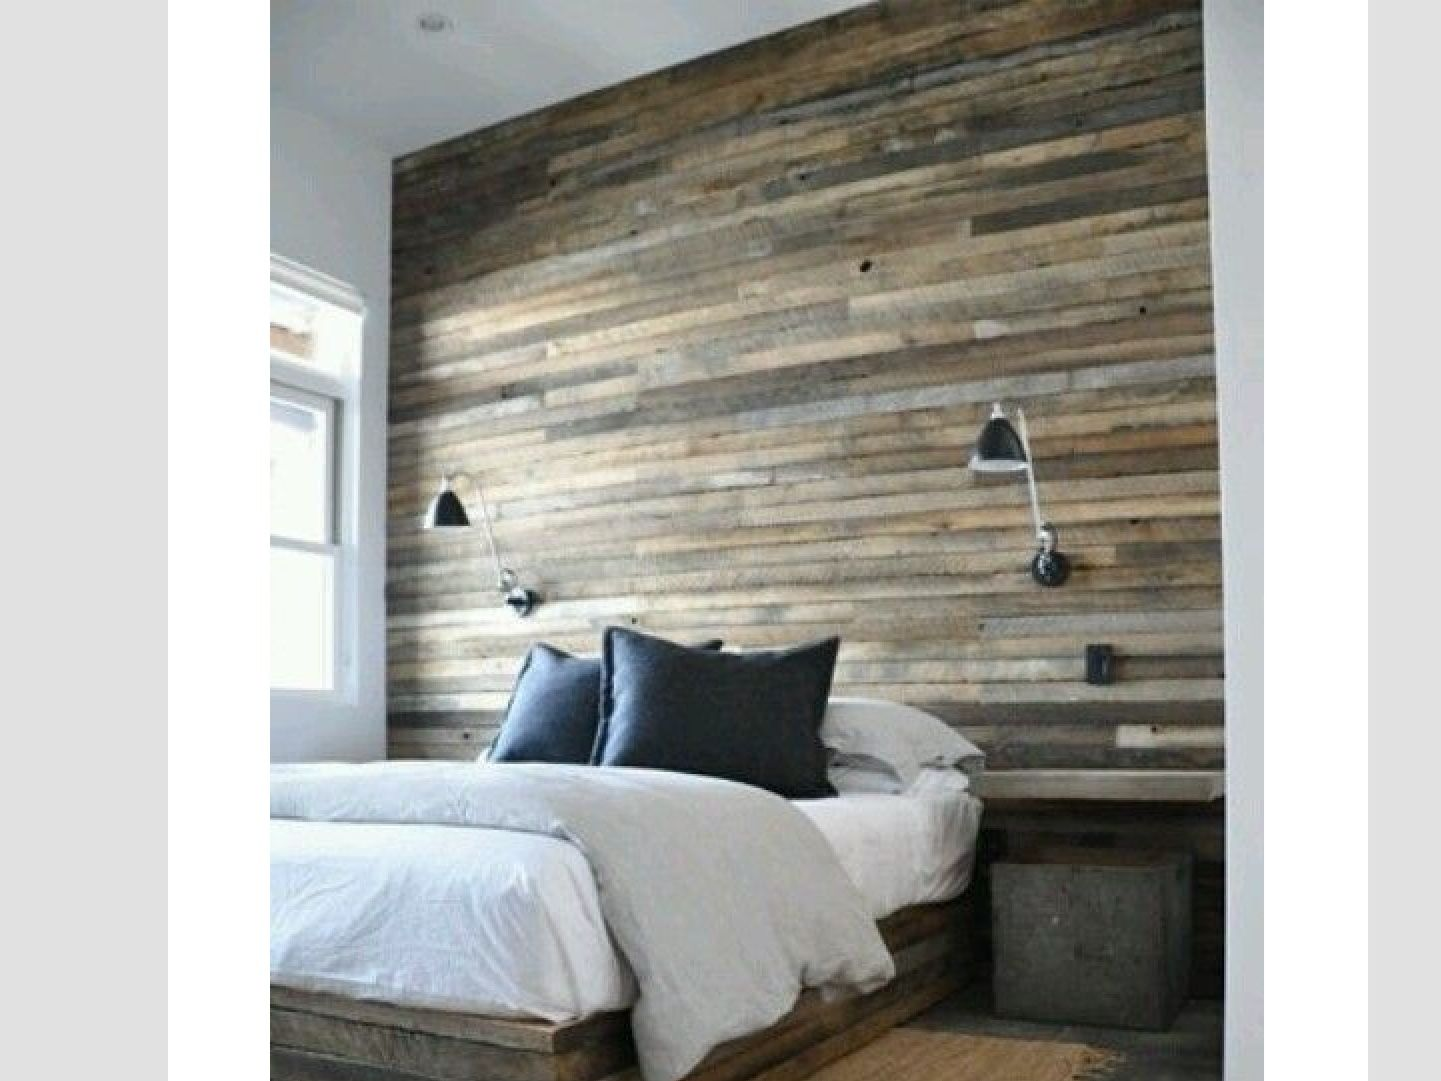 Low profile bed with wall paneling behind bed wall.  Home bedroom